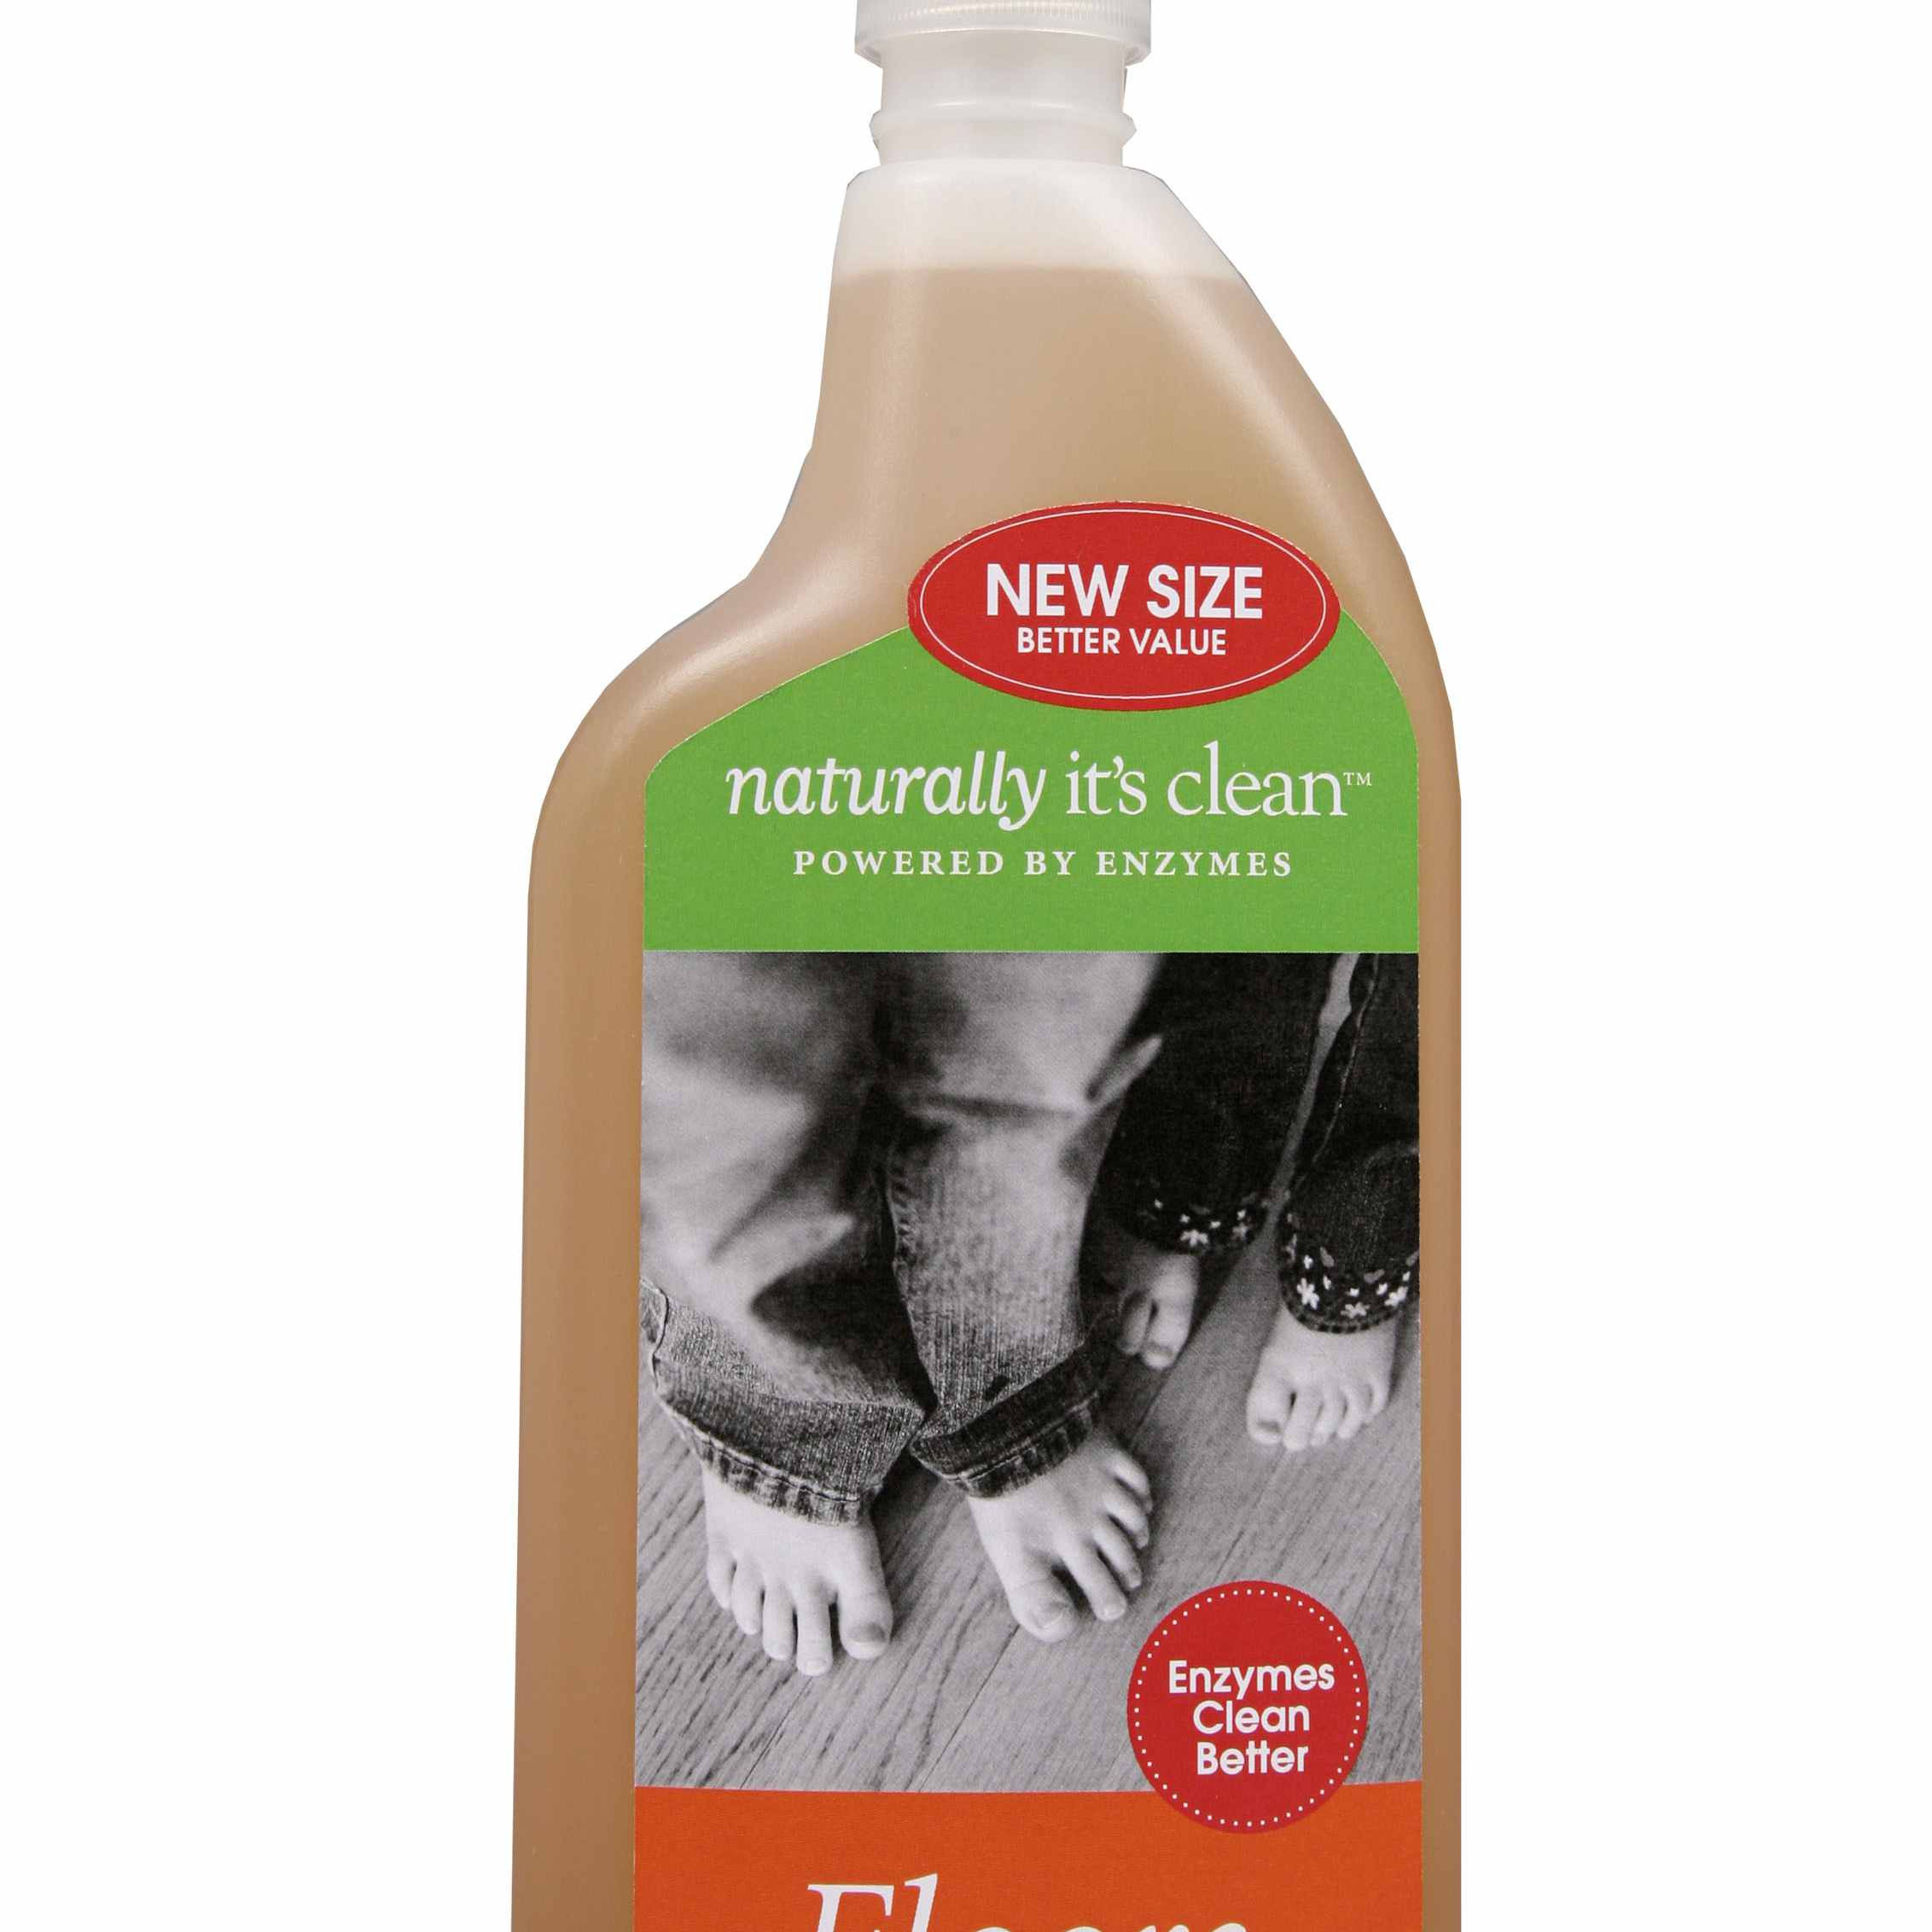 hardwood floor cleaner liquid of 8 all natural cleaners that leave your floors spotless within naturally its clean floors